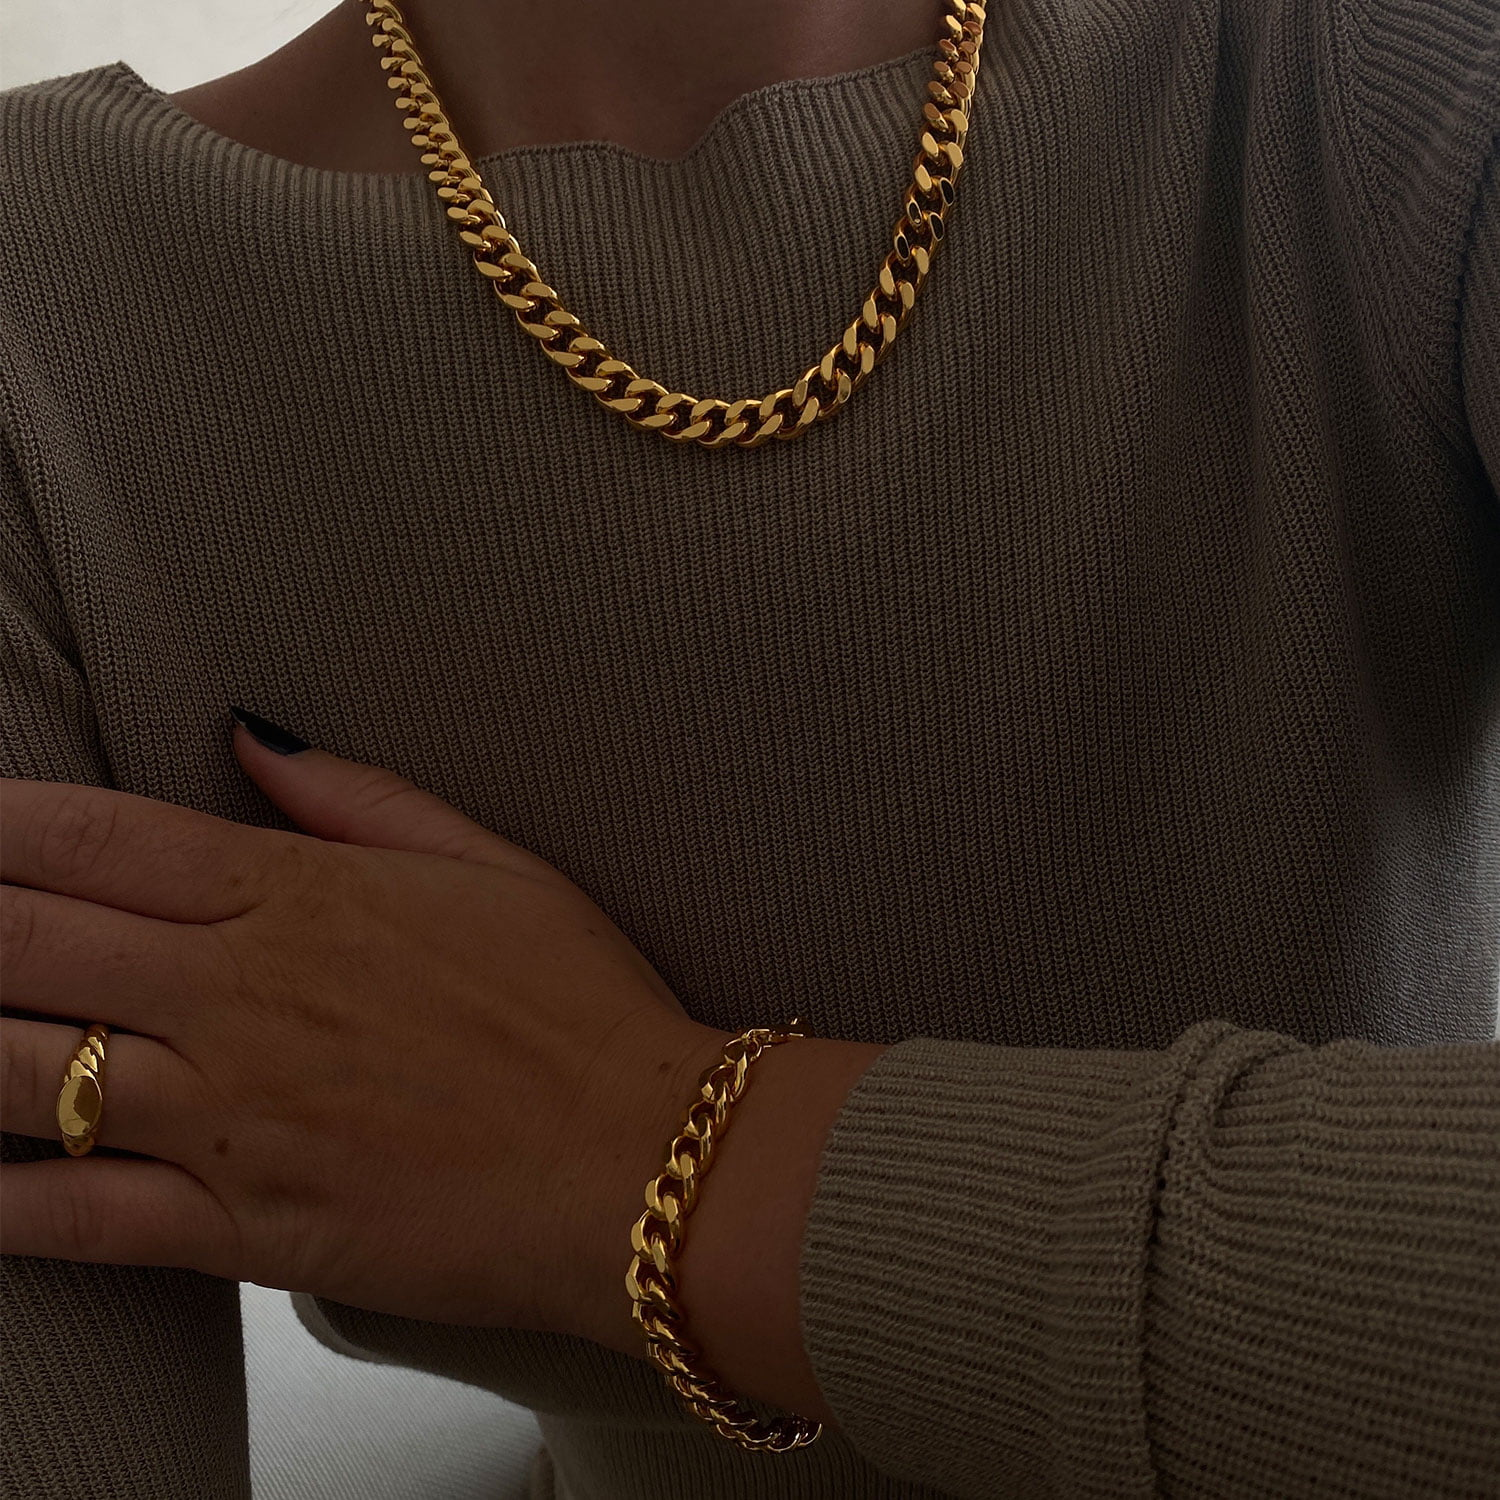 Chunky cuban set made in 18k gold plated brass